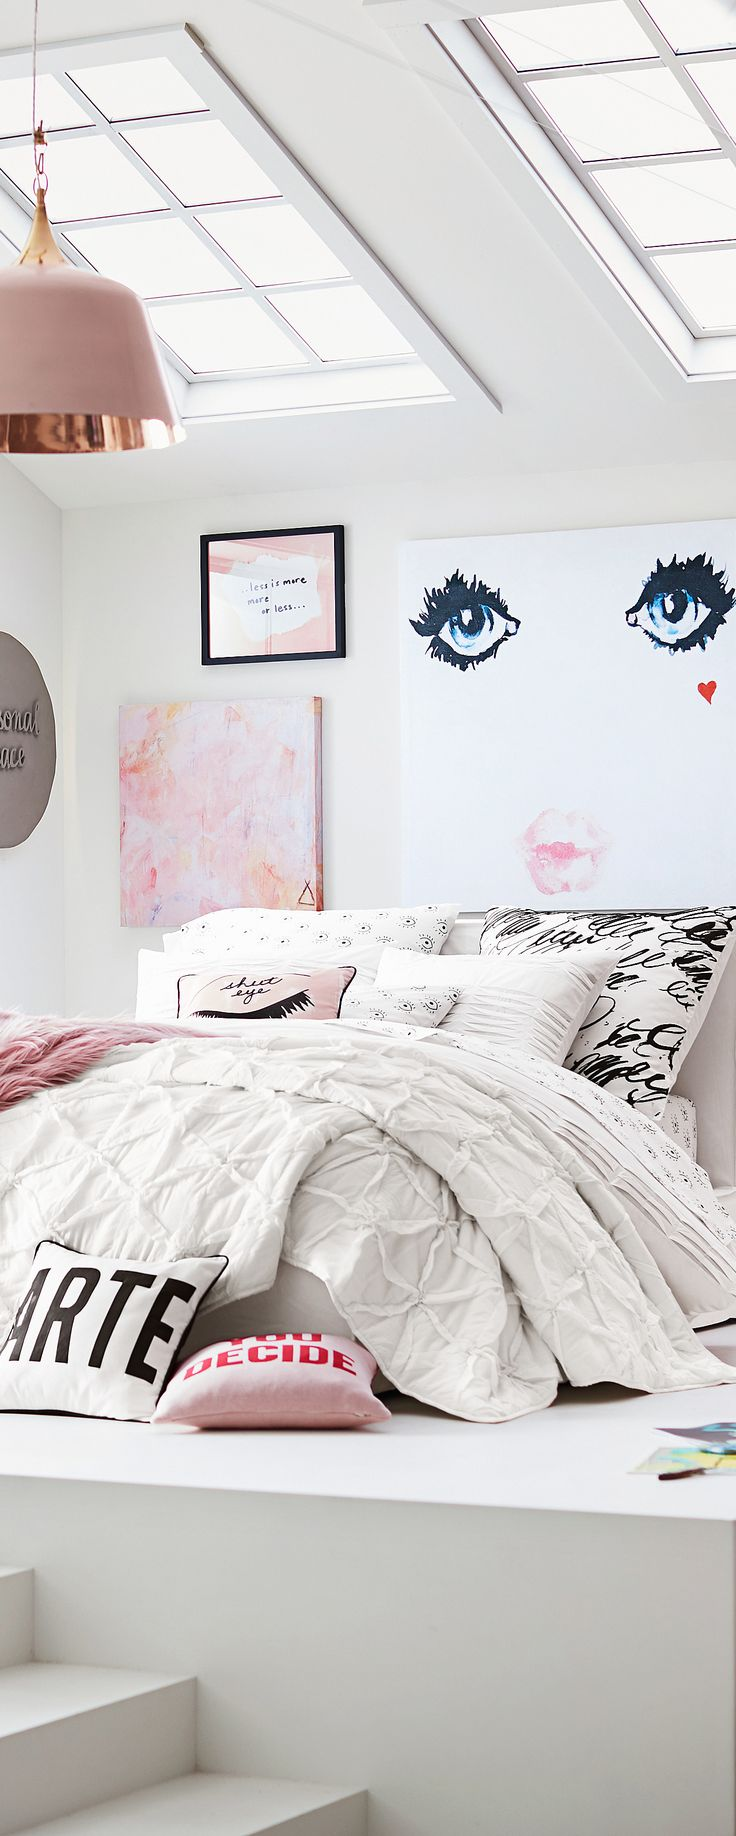 best girls bedrooms girls bedding  room decor images on  - find girls bedding from all the top brands from girls comforters to duvets quilts we search out the best in bedding  make little girl dreams areality